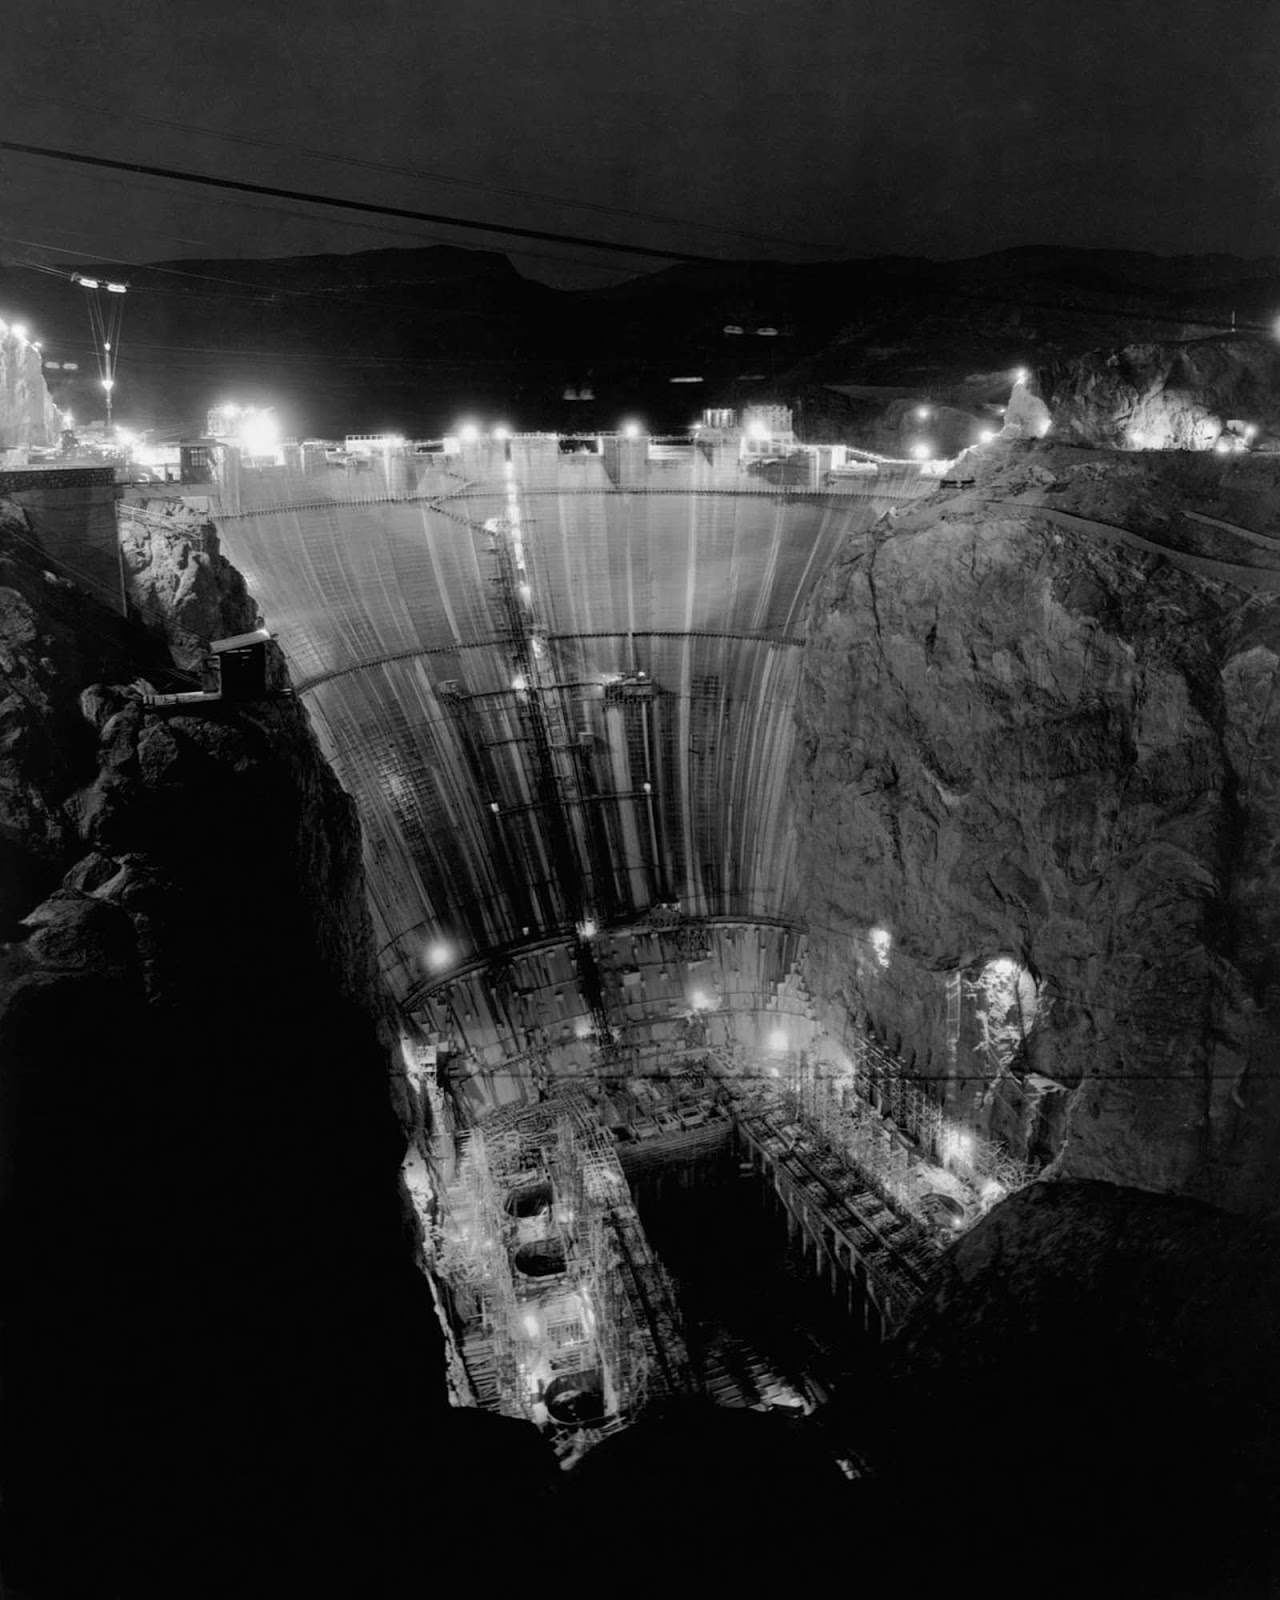 Construction on the dam proceeded day and night. February 25, 1934.